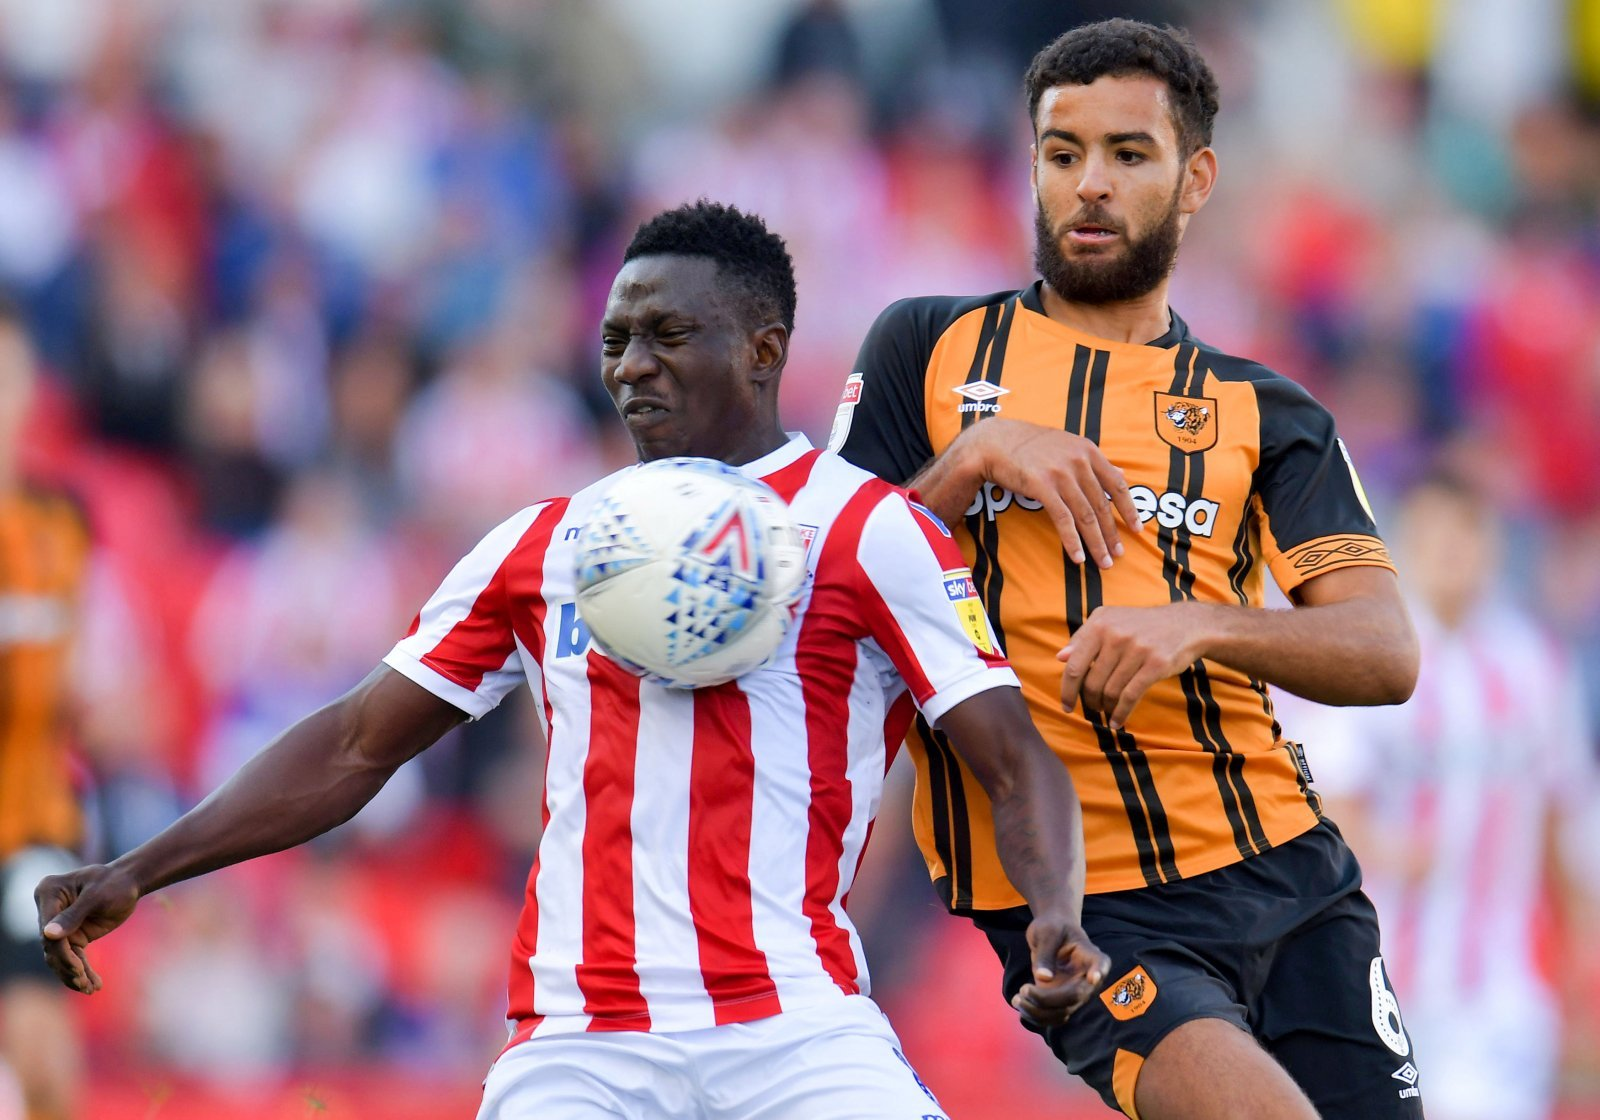 McClean shone for Stoke, but Etebo was their unsung hero in crucial Hull victory